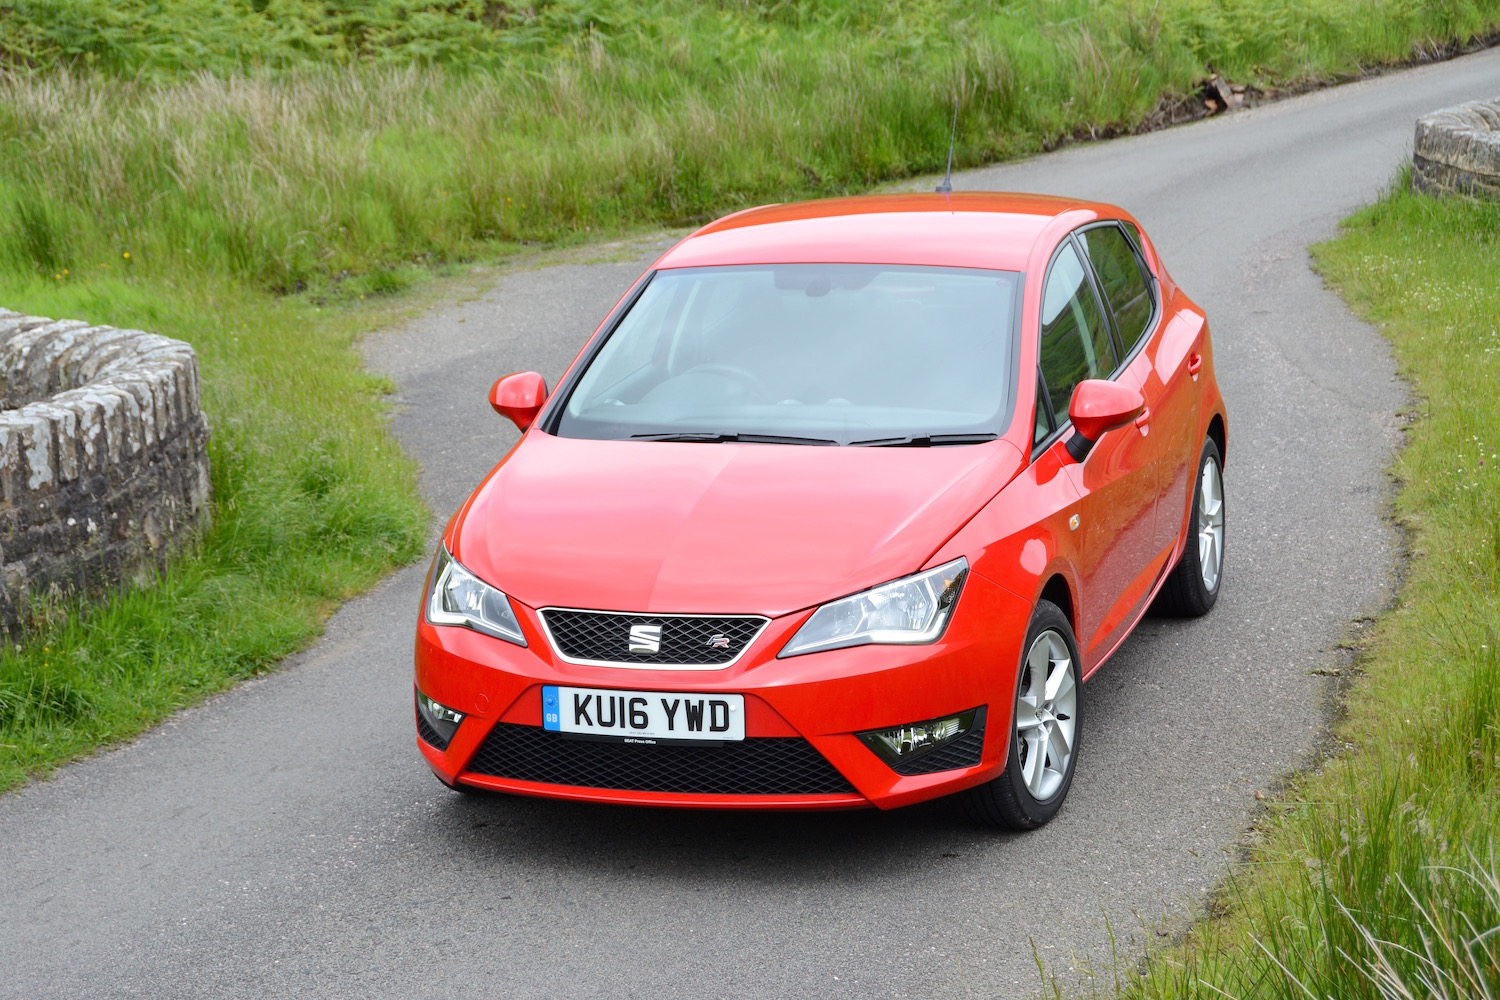 SEAT Ibiza FR 1.0 EcoTSI 110 PS 7-speed DSG-auto